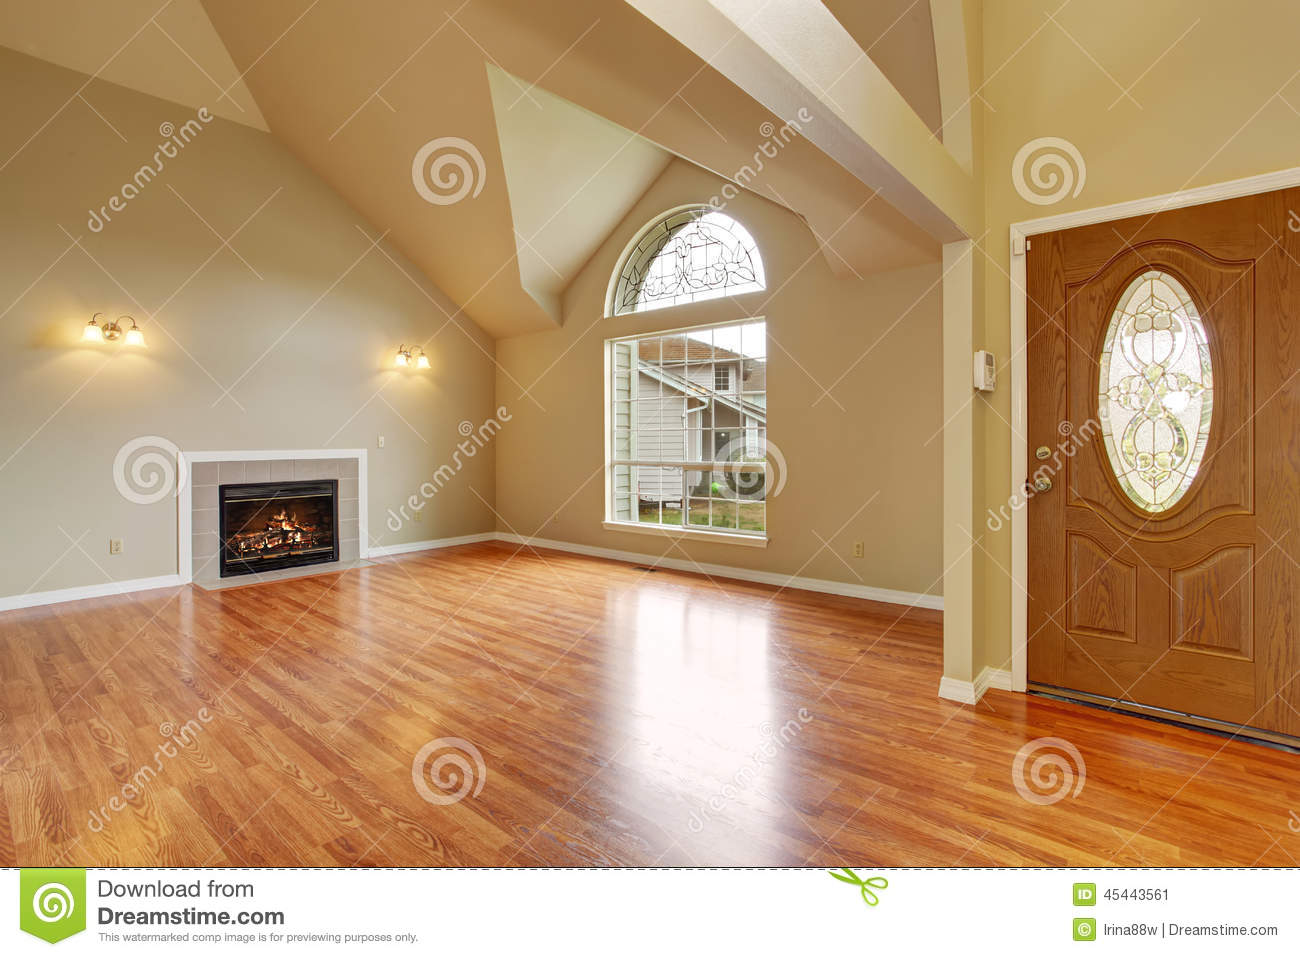 Empty Living Room With Fireplace Nd Big Arch Window Stock